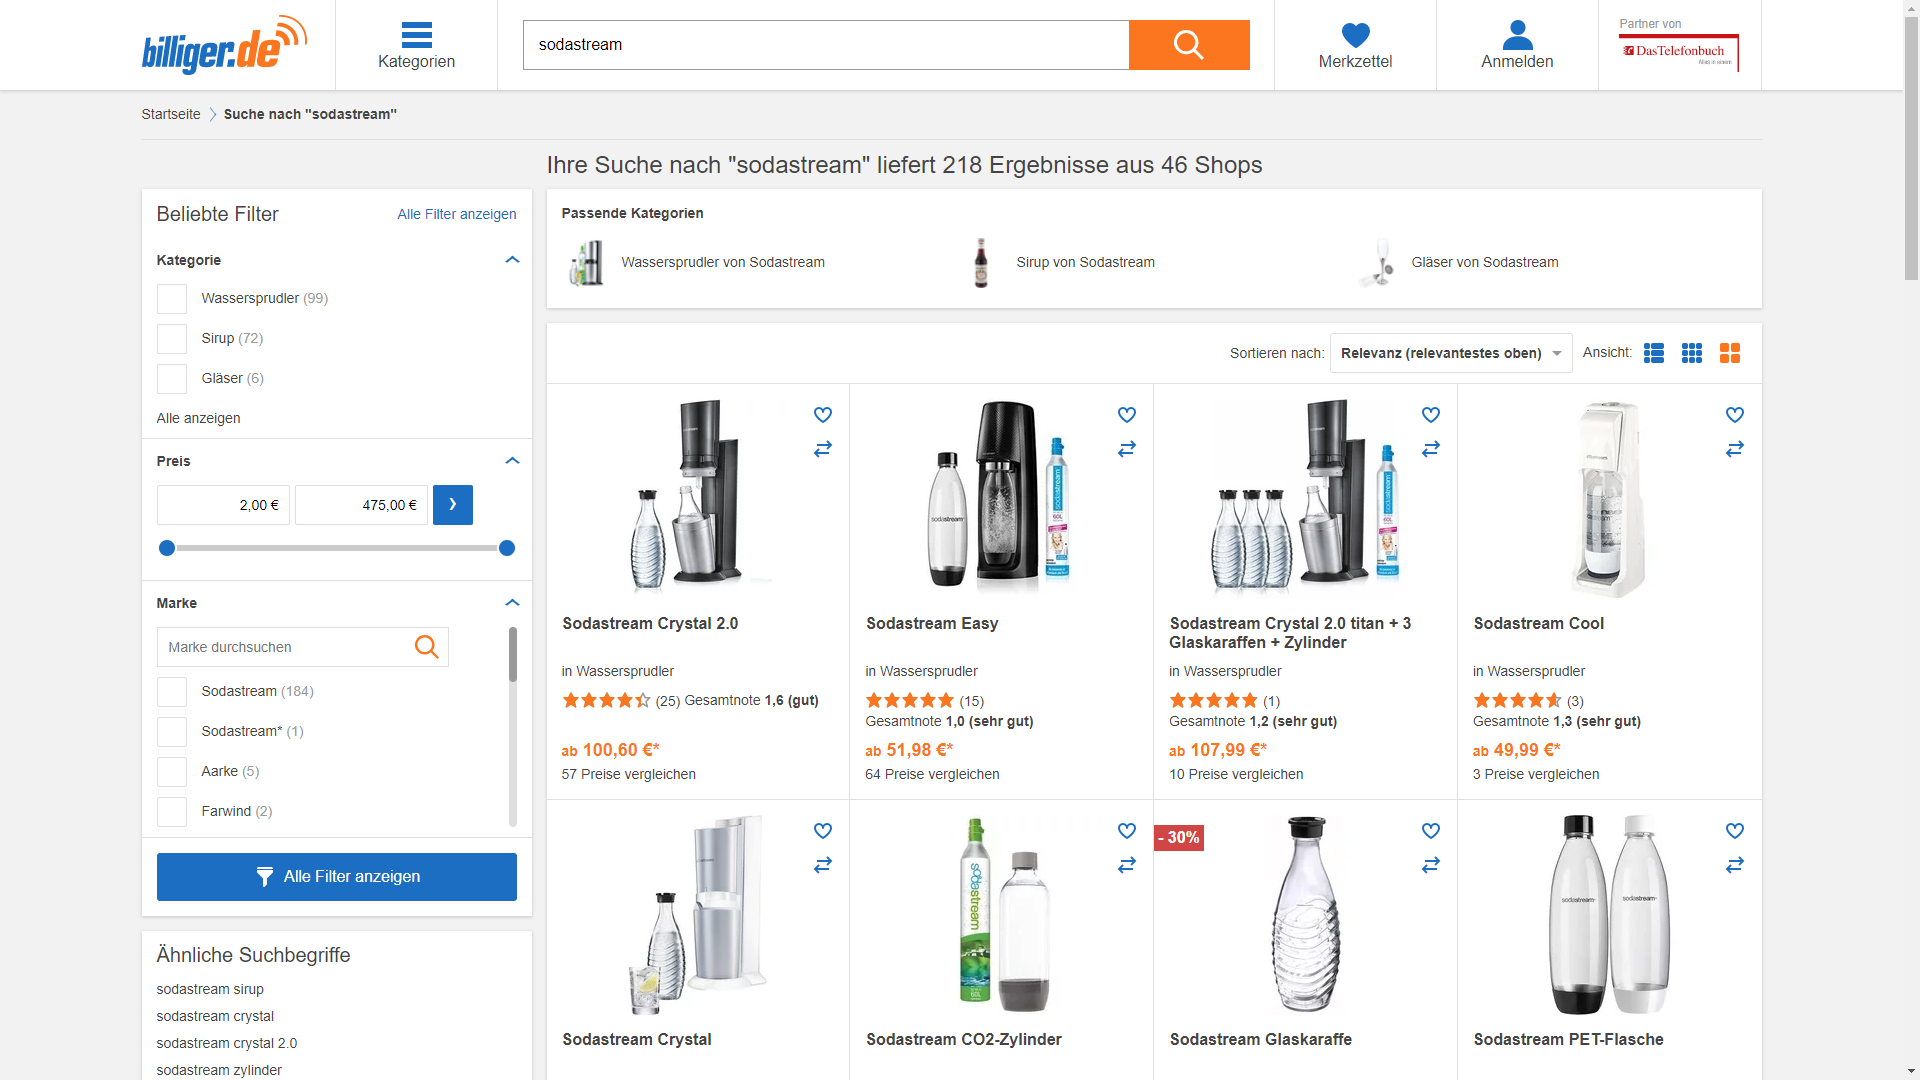 google shopping screenshots cla (5)